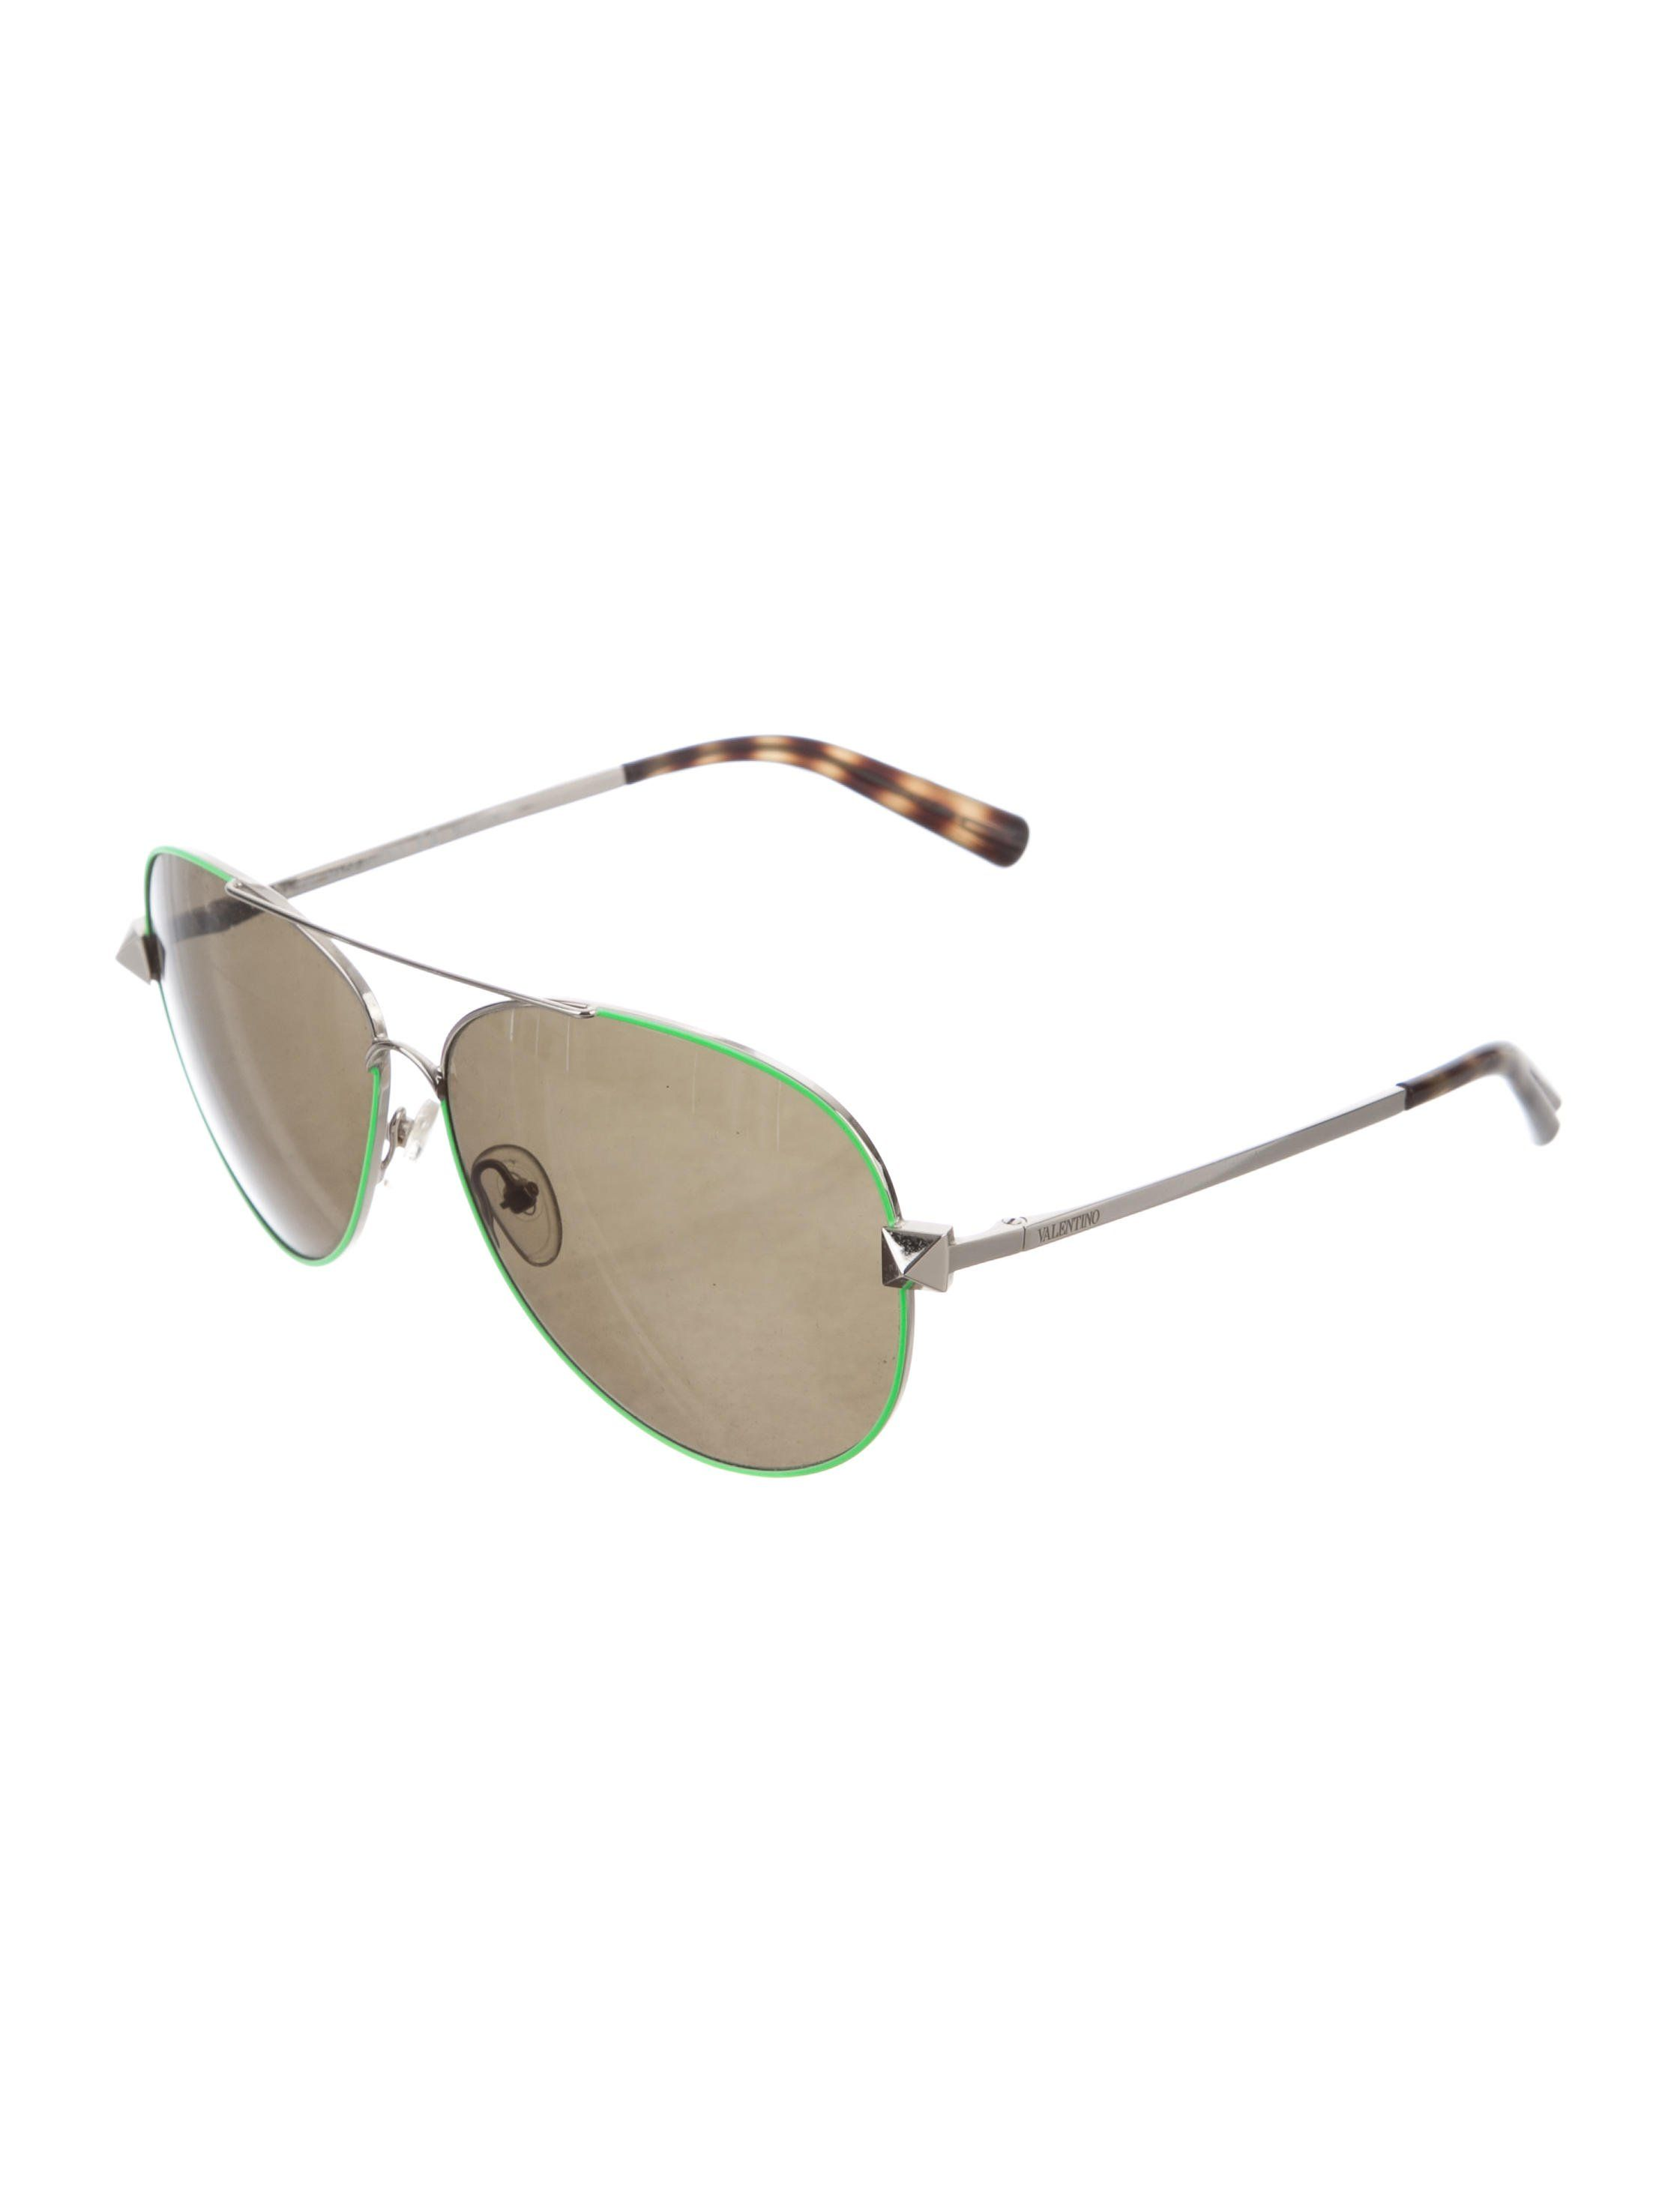 5c770543dad6 Green and silver-tone metal Valentino aviator sunglasses with tinted lenses  and logos at arms. Includes box and case.